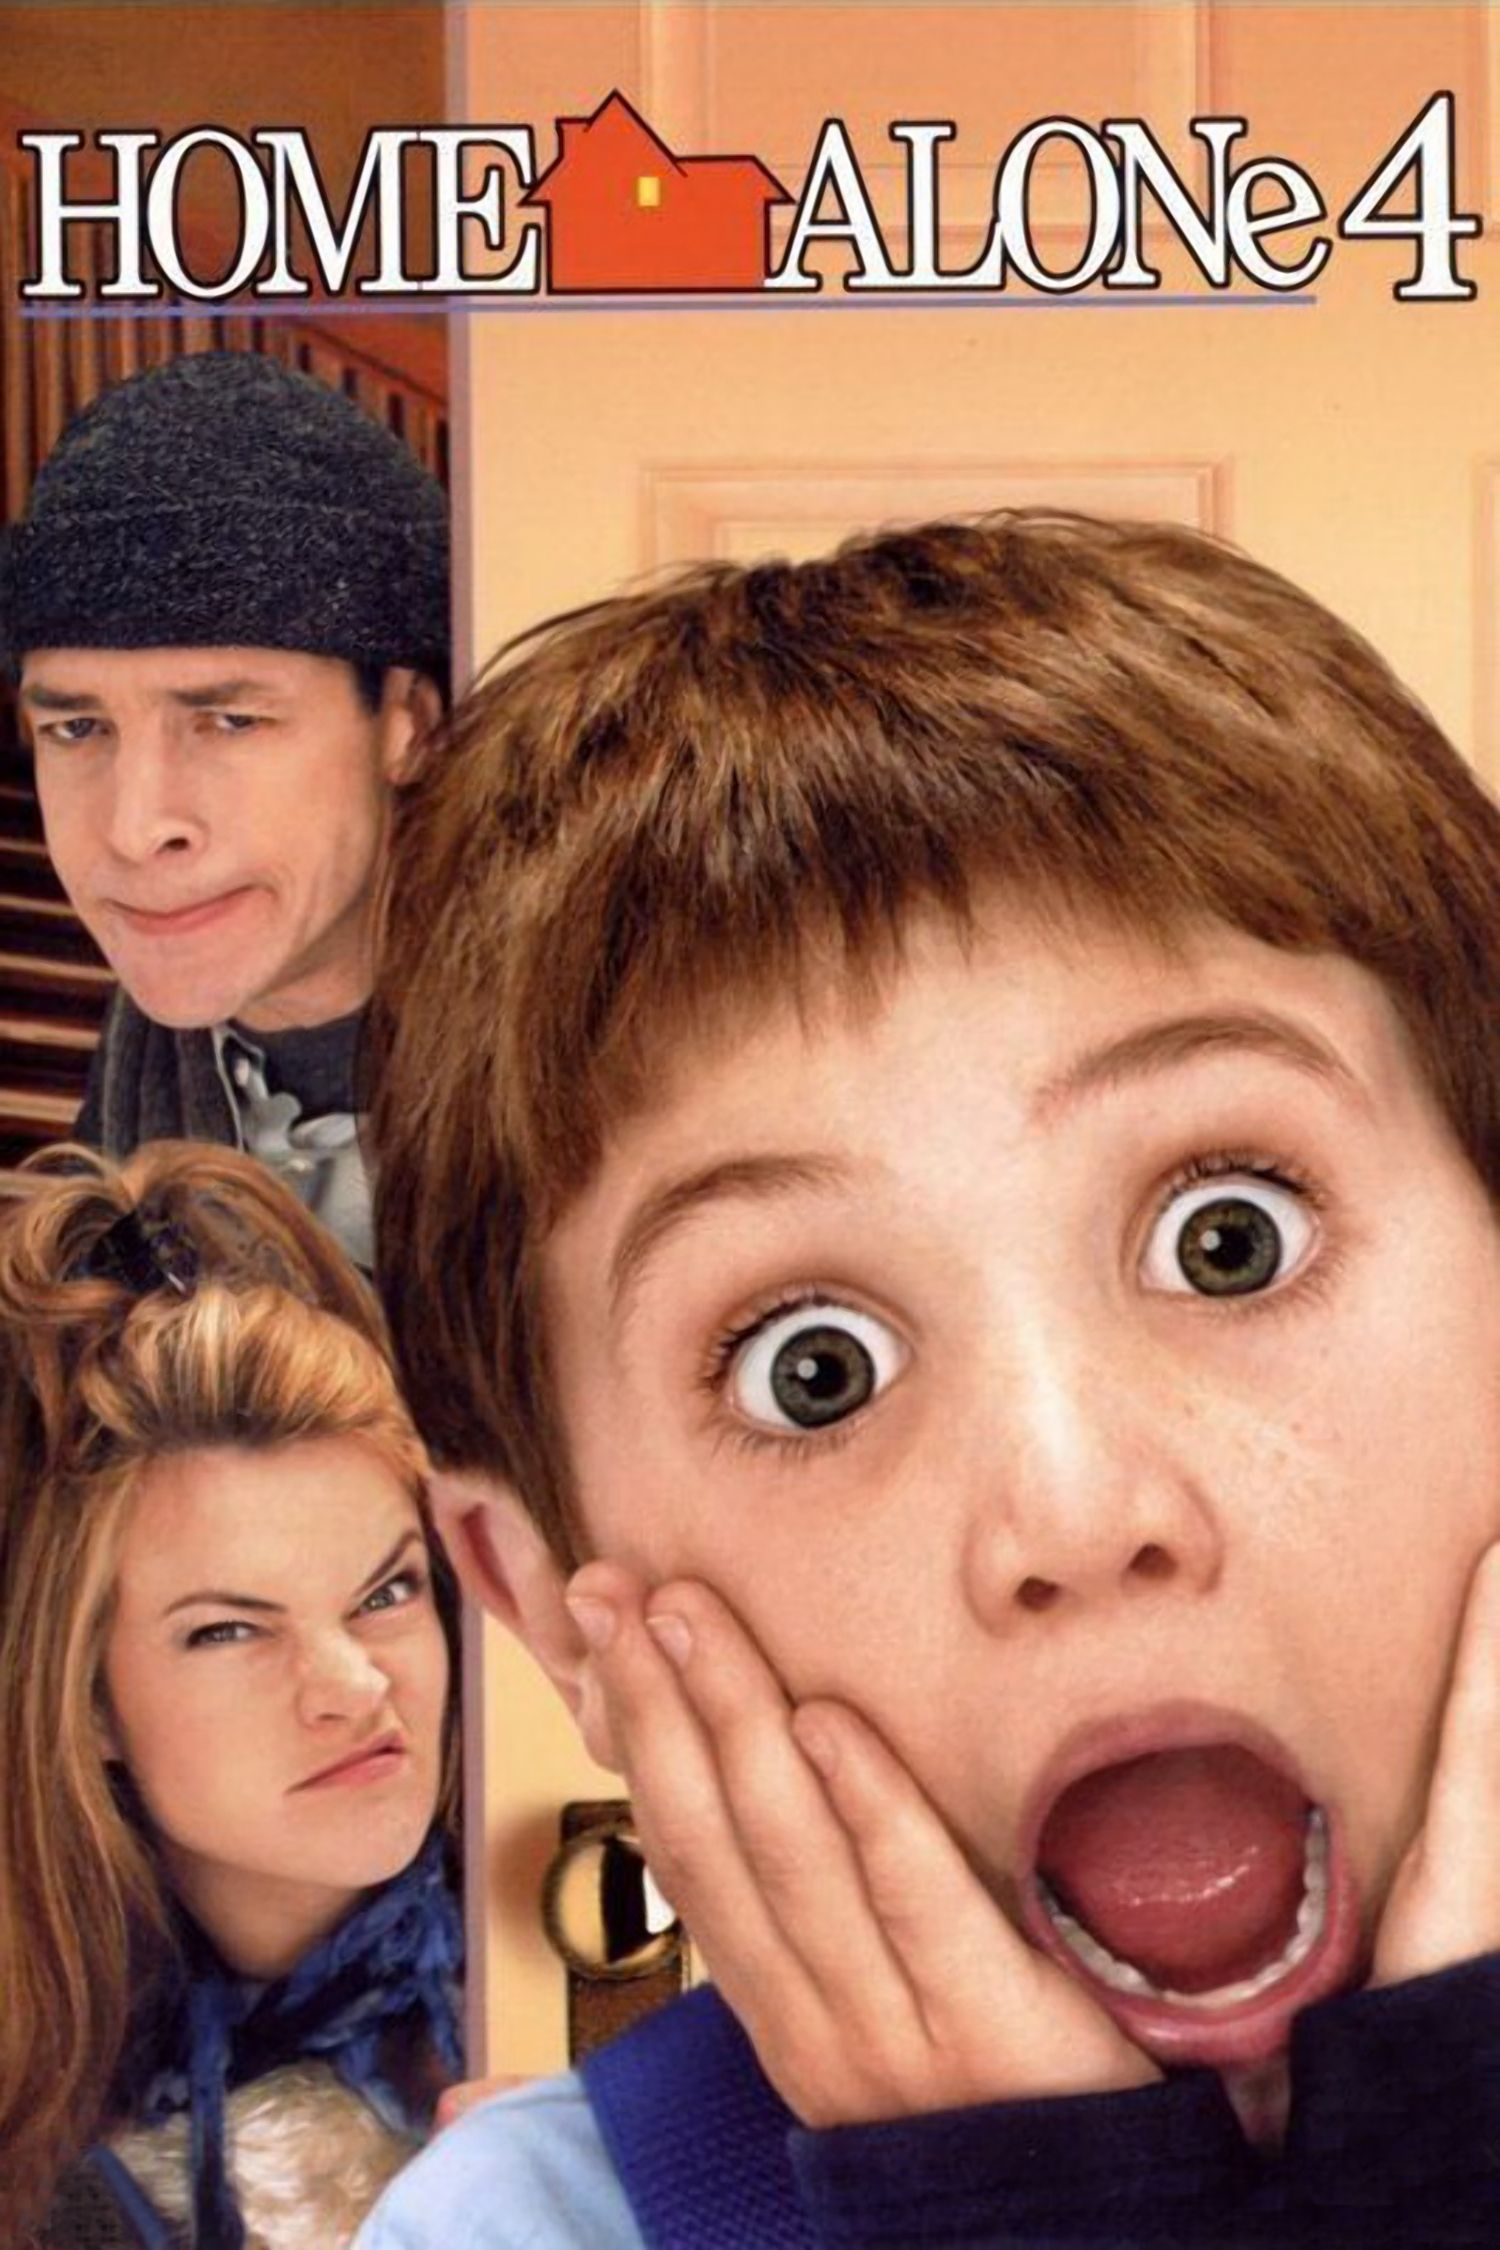 Home Alone 4 MOVIES Pinterest